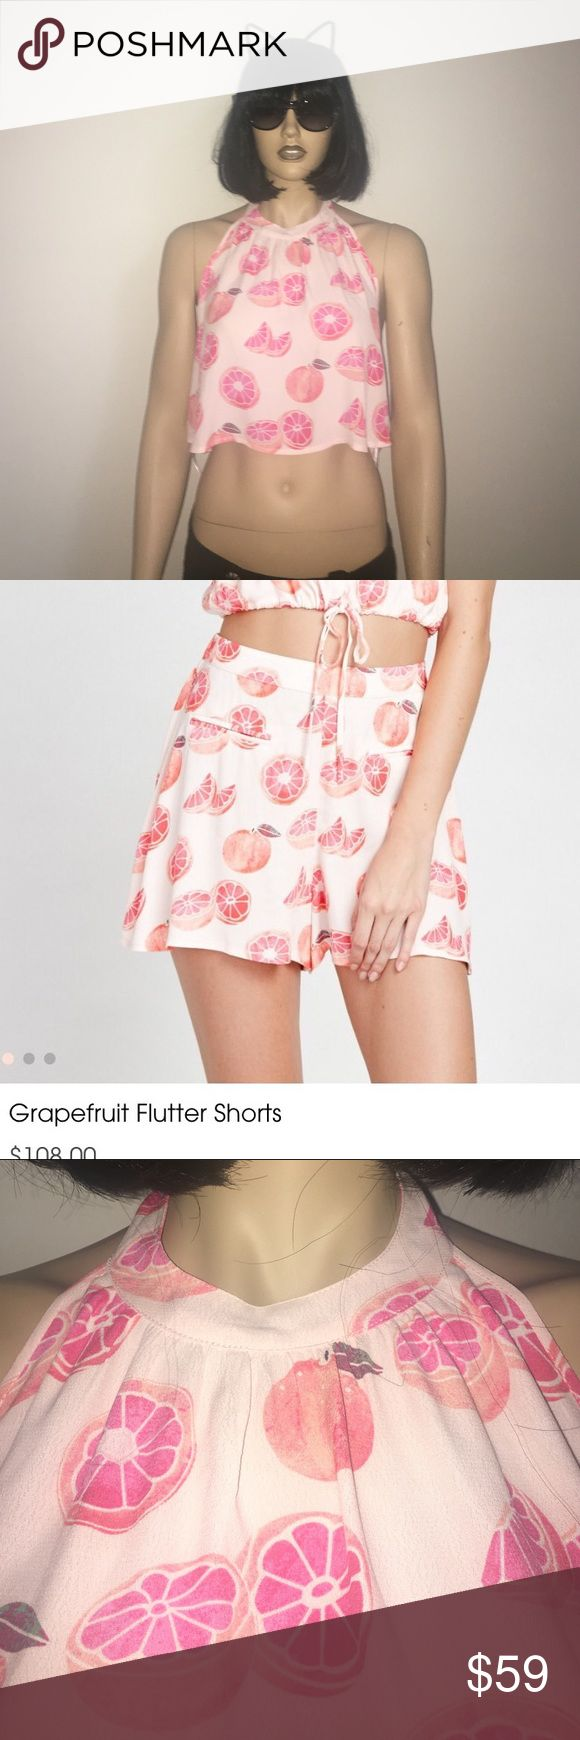 NWT WILDFOX GRAPEFRUIT HARTER TOP Sold out! Brand new with tags!Goes with the flutter shorts I have in my other listing. I can bundle the two for a big discount.!!! Excepting all offers :) ask me anything! Wildfox Tops